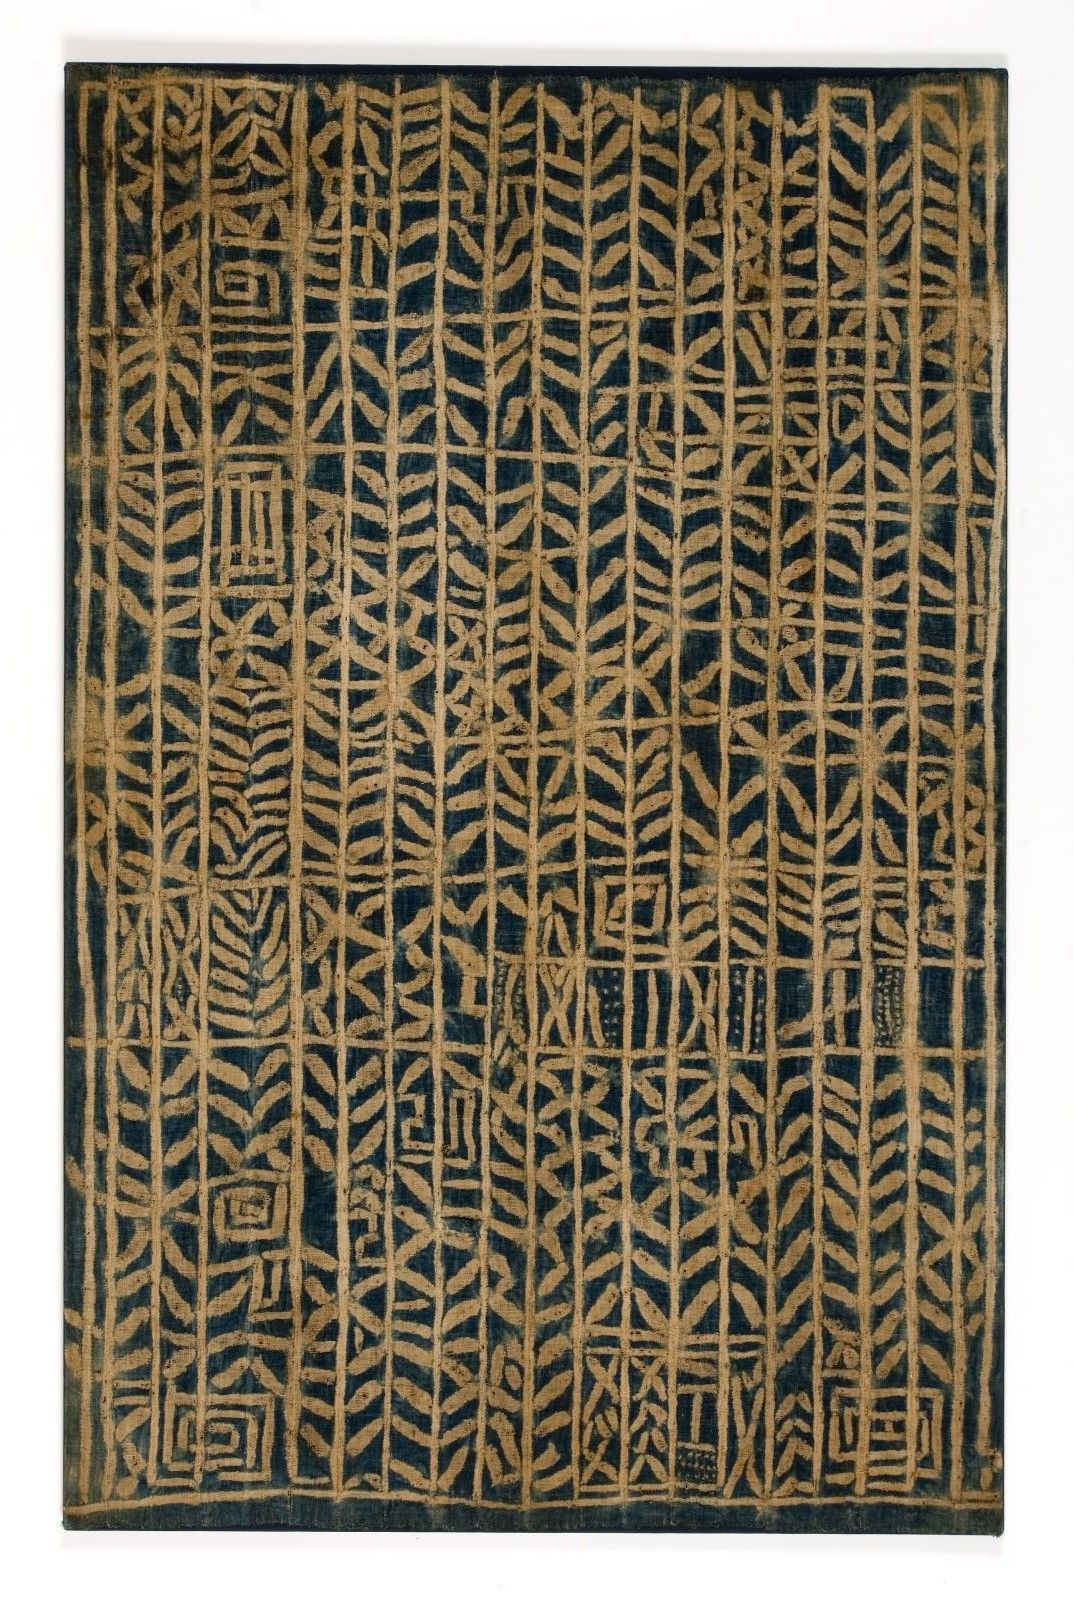 Africa | Ndop Royal Hanging for Ceremonial and Funerary Occasions. Bamum or Bamileke people, Cameroon | First half 20th century | Stripwoven cotton stitch-resist dyed with indigo